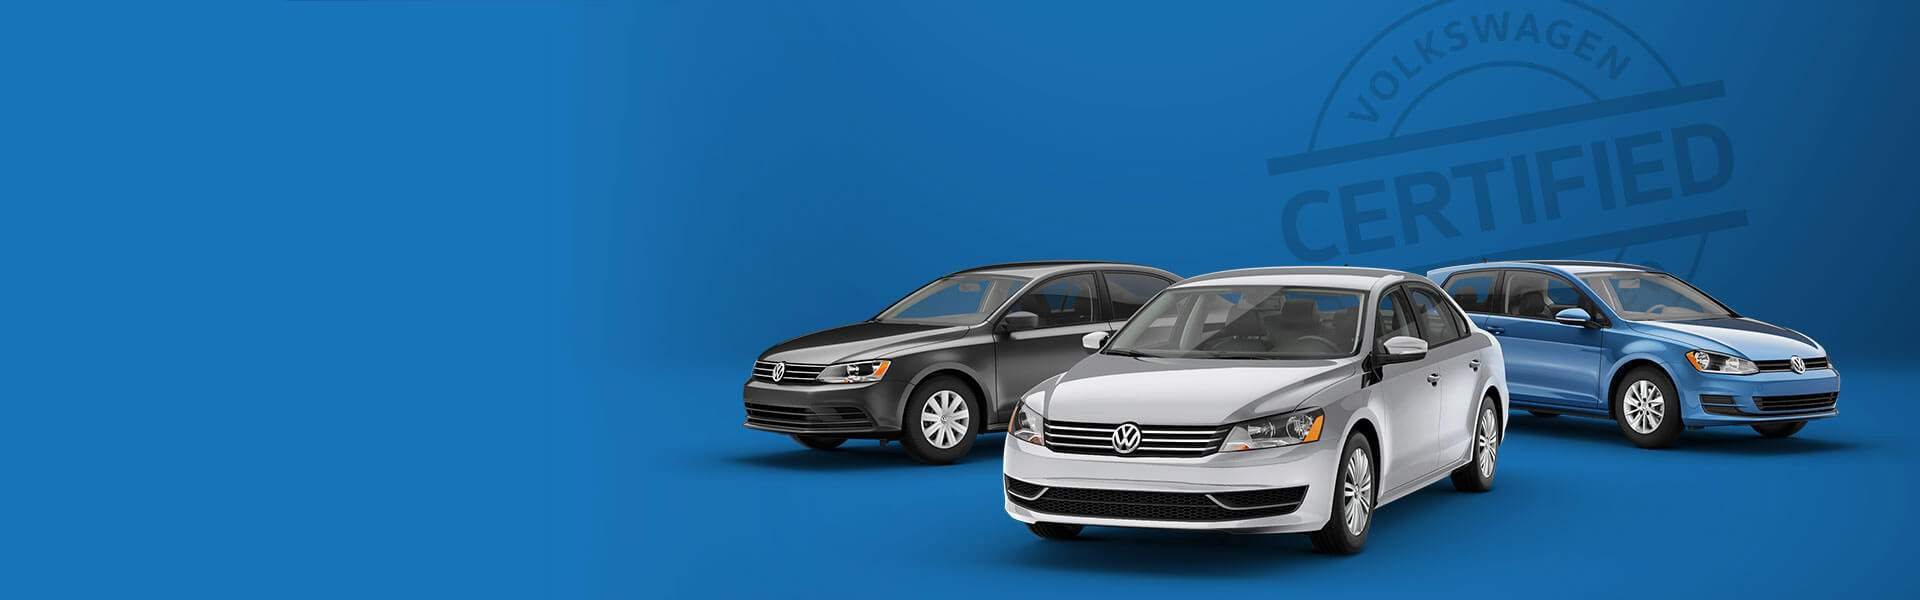 Volkswagen Certified Pre-Owned in Philadelphia, PA